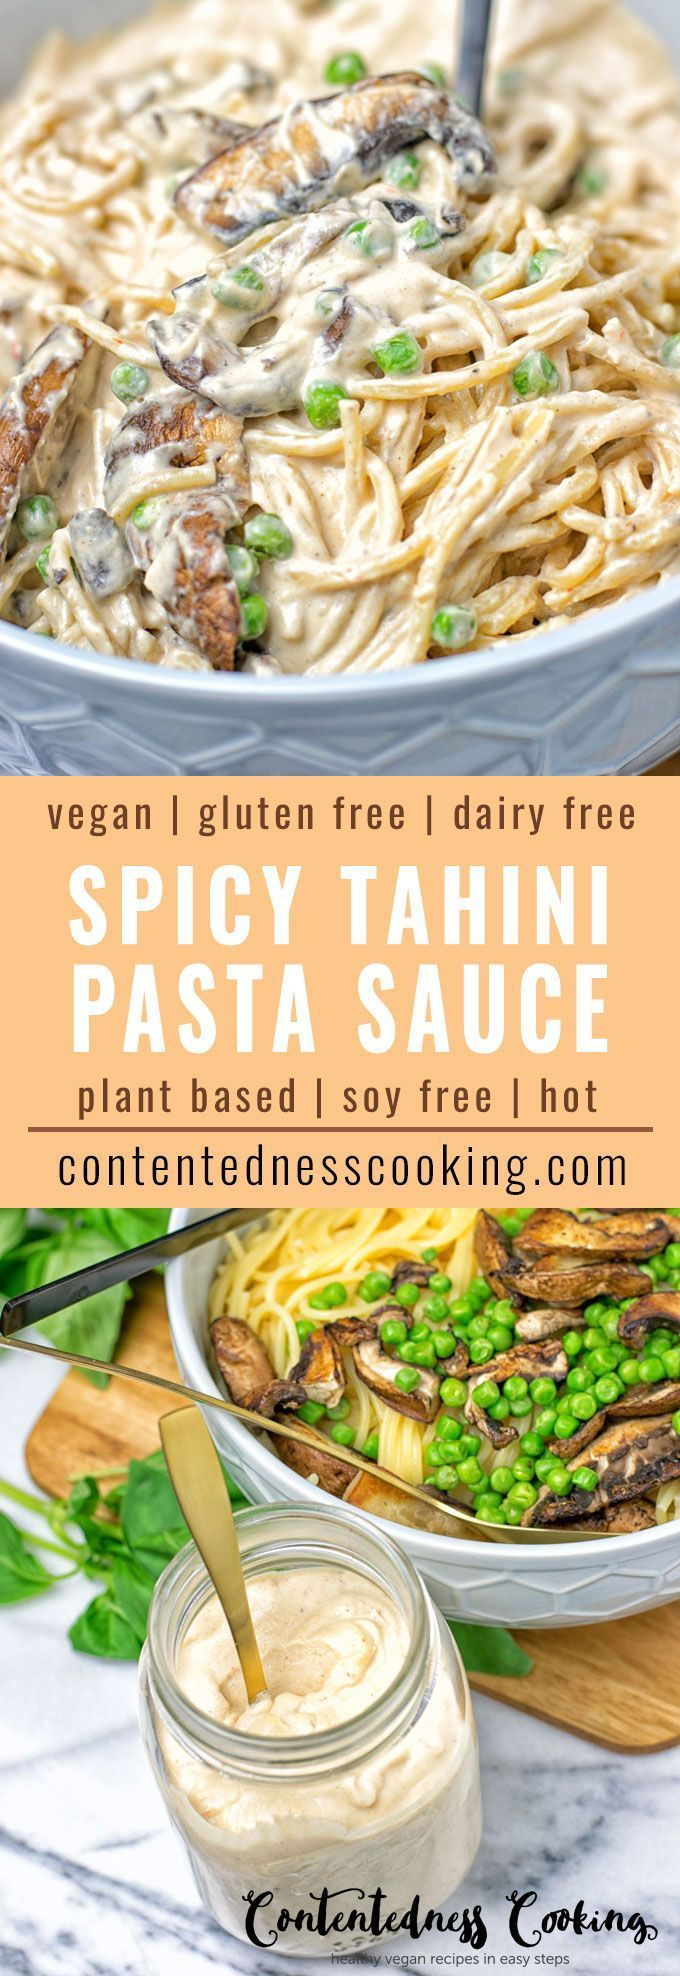 This Spicy Tahini Pasta Sauce requires only 4 ingredients for an incredibly easy lunch or dinner minus the peas